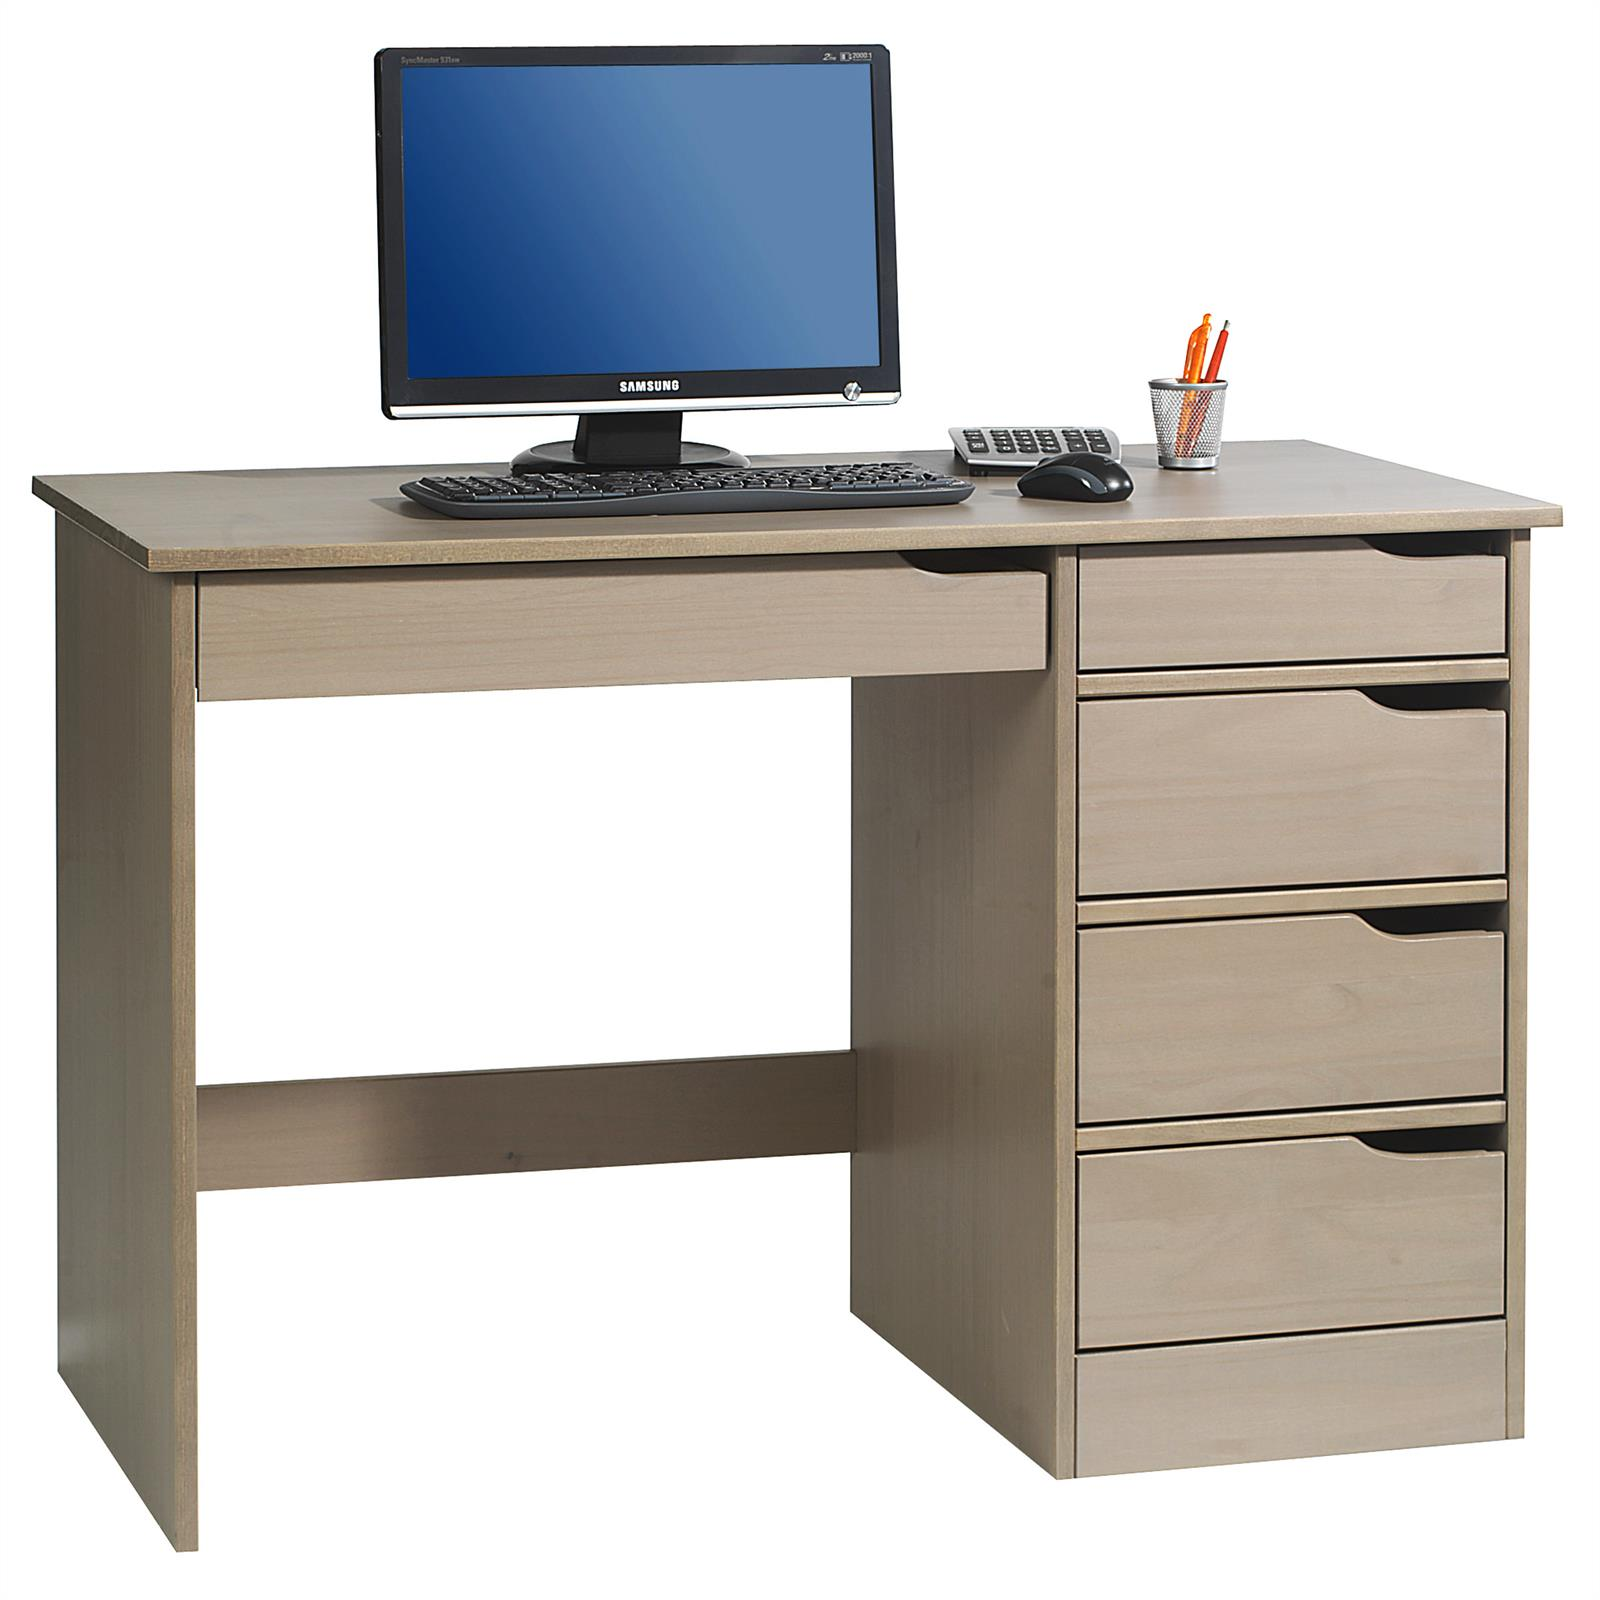 bureau en pin massif hugo lasur taupe mobil meubles. Black Bedroom Furniture Sets. Home Design Ideas